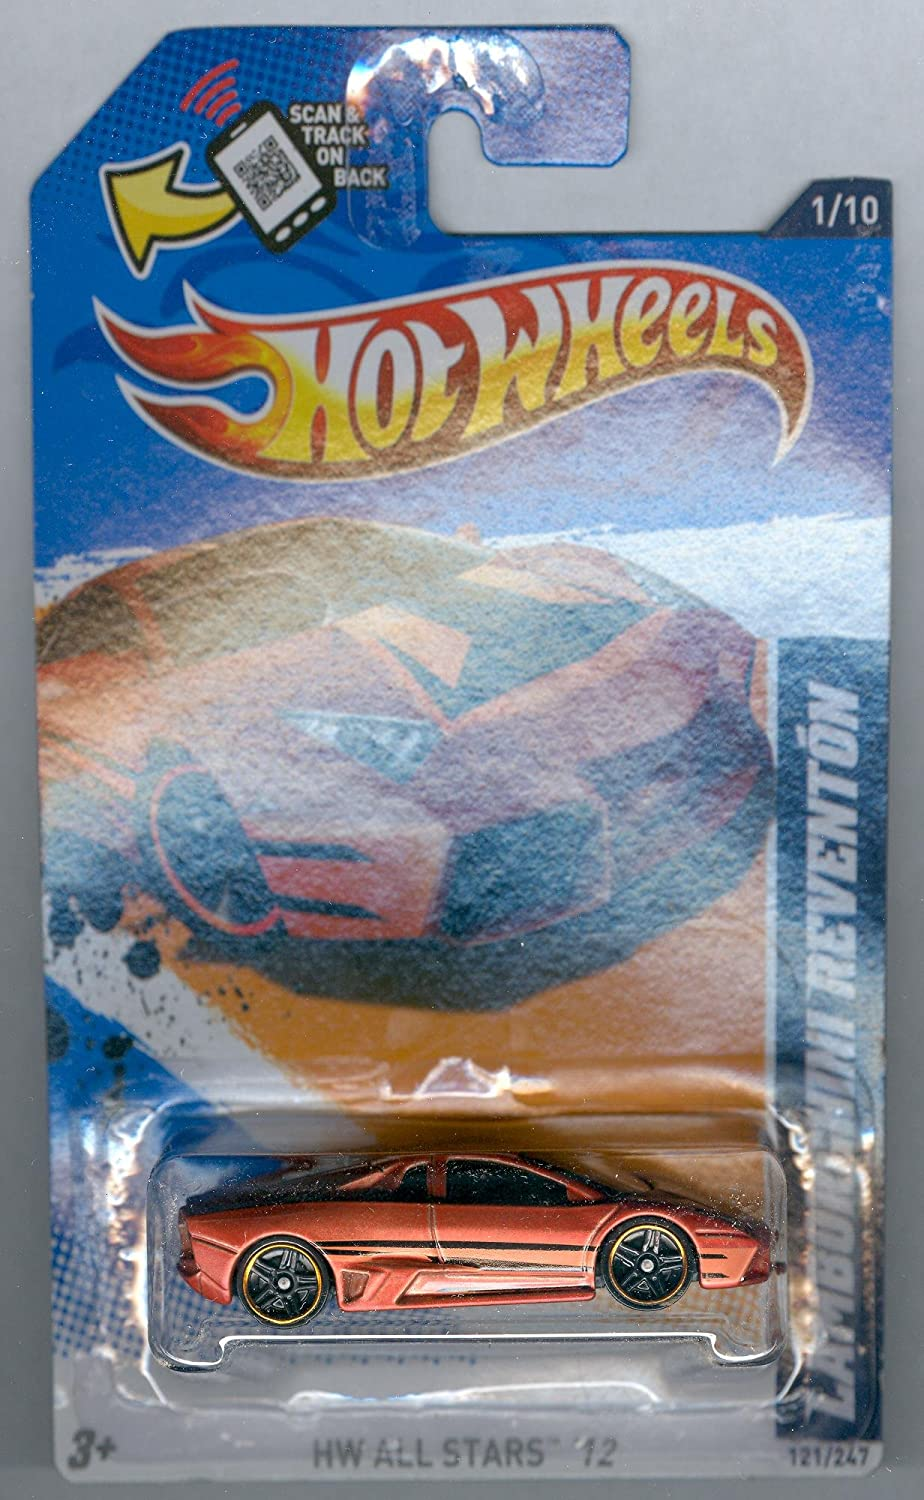 Hot Wheels 2012-121 Lamborghini Reventon BRONZE HW All Stars '12 1:64 Scale